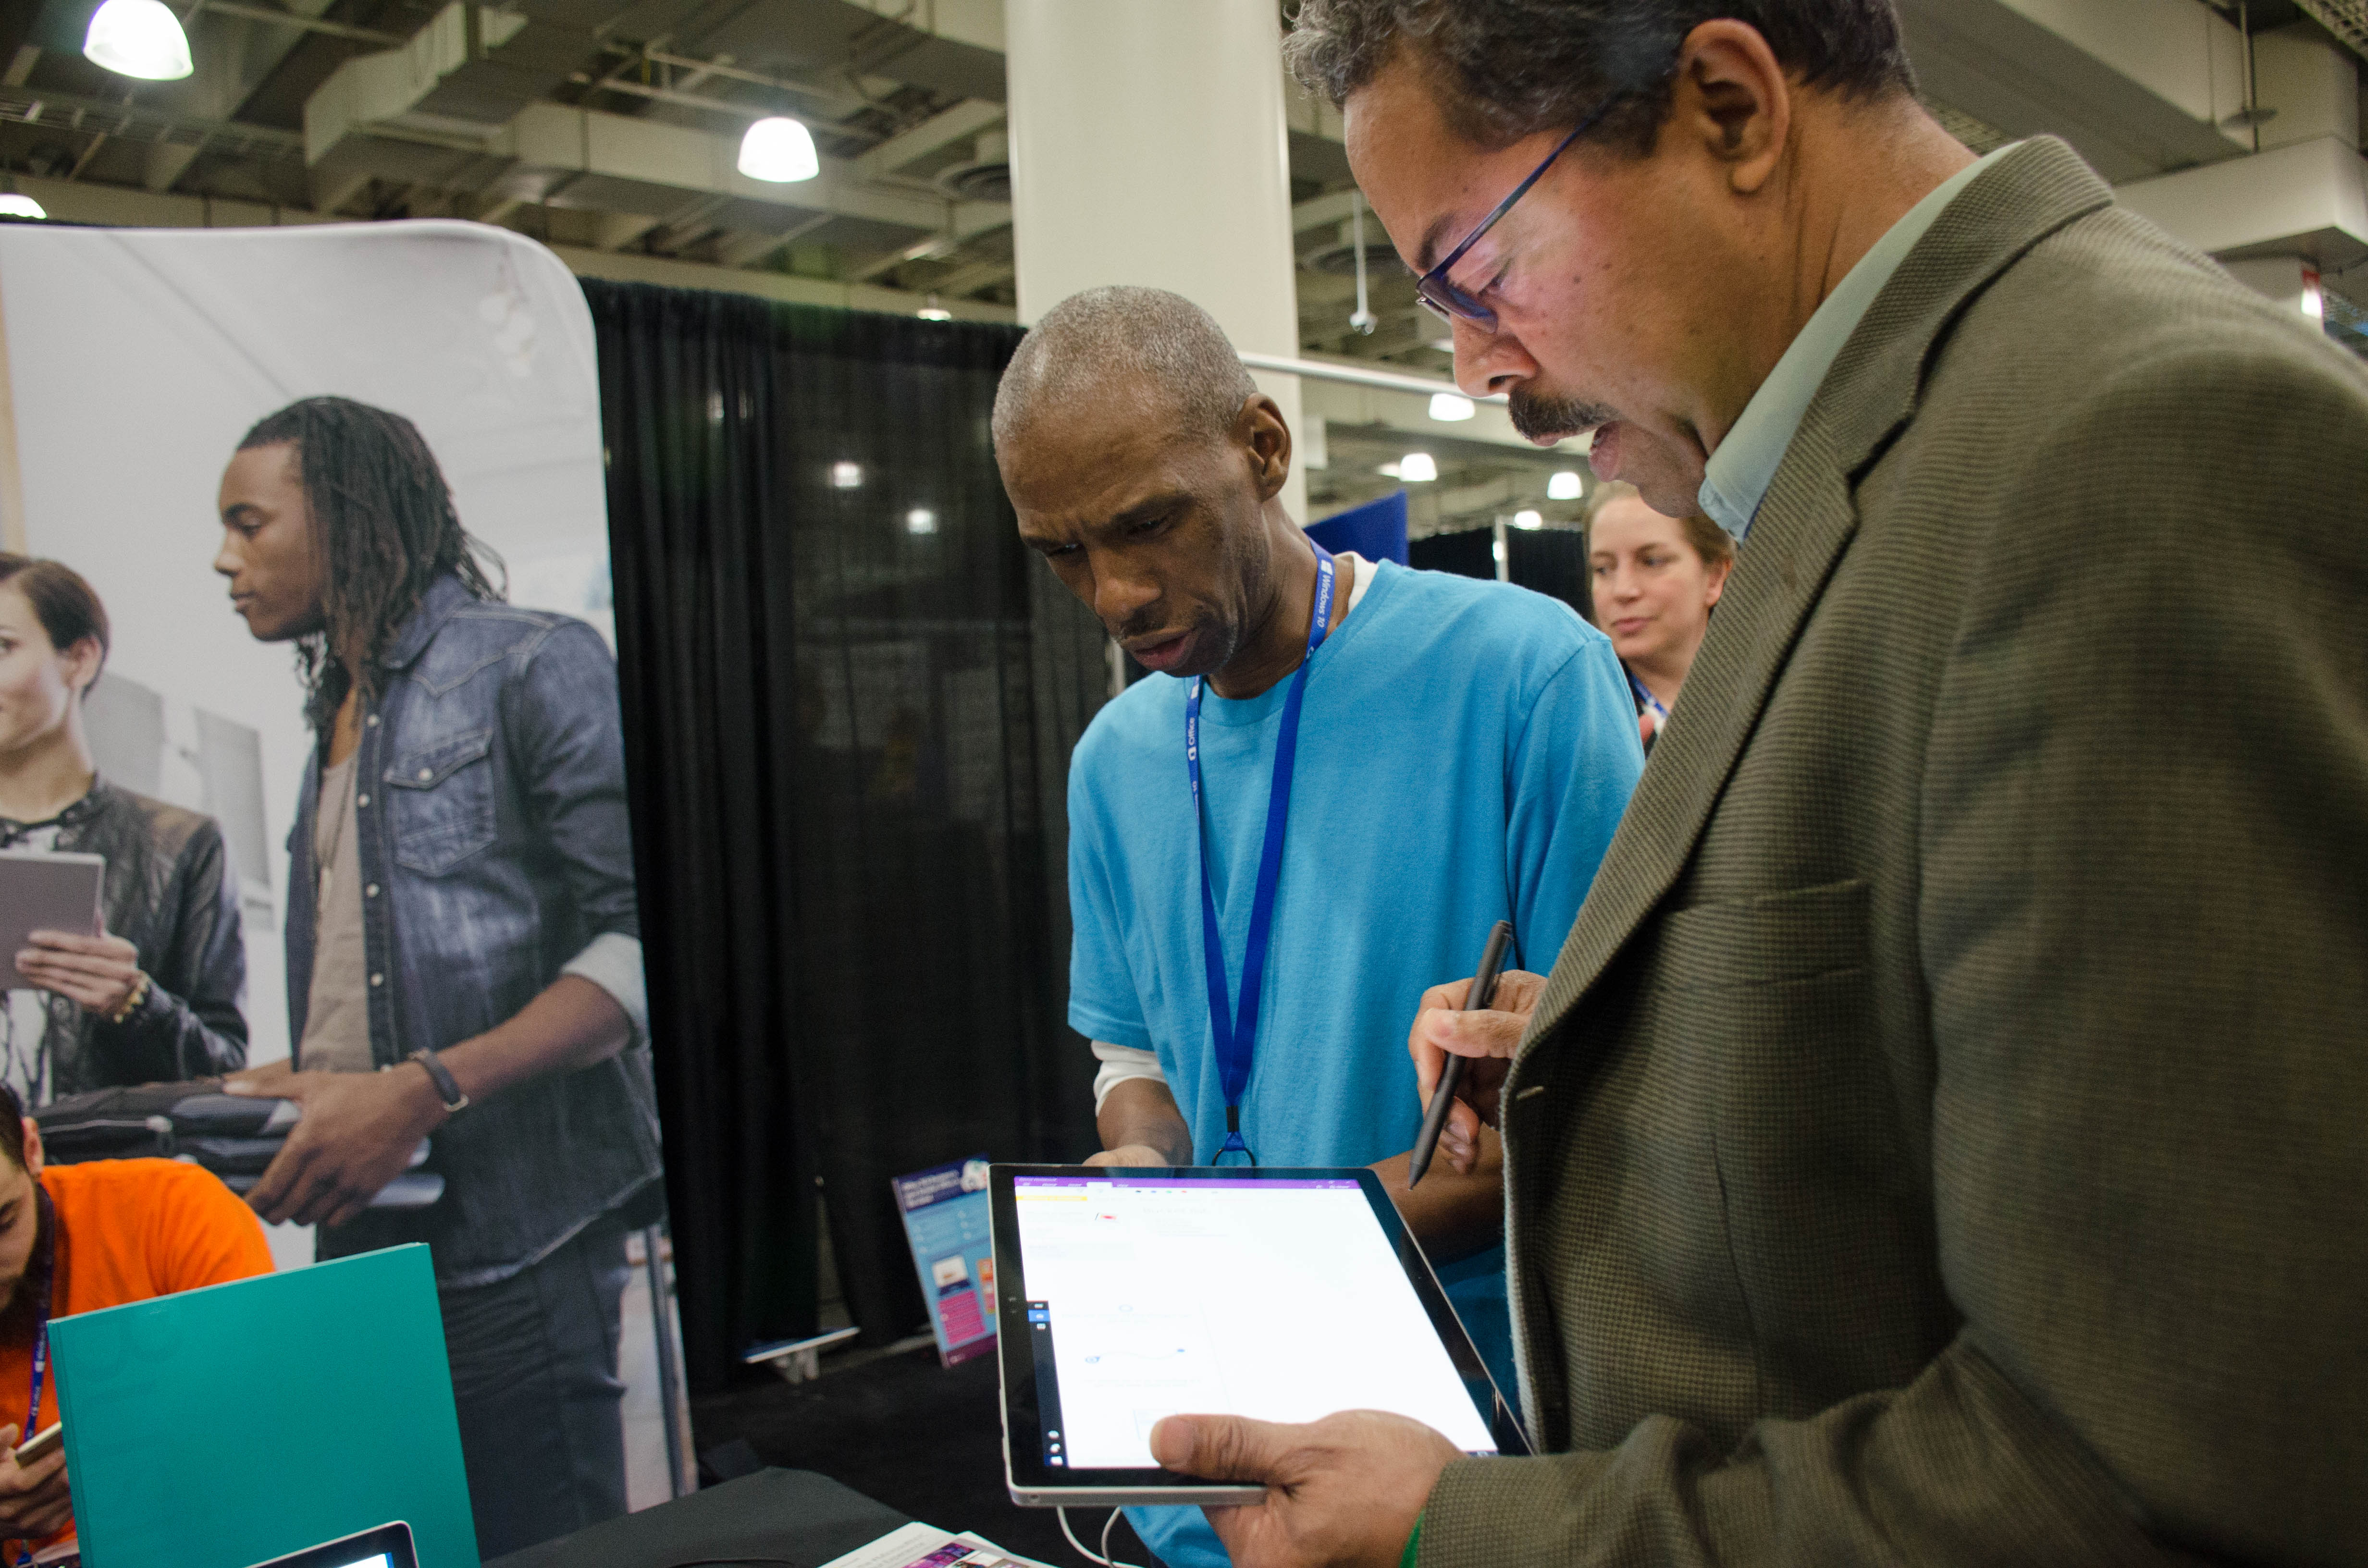 Expo attendee testing out the new Microsoft Surface Pro 4